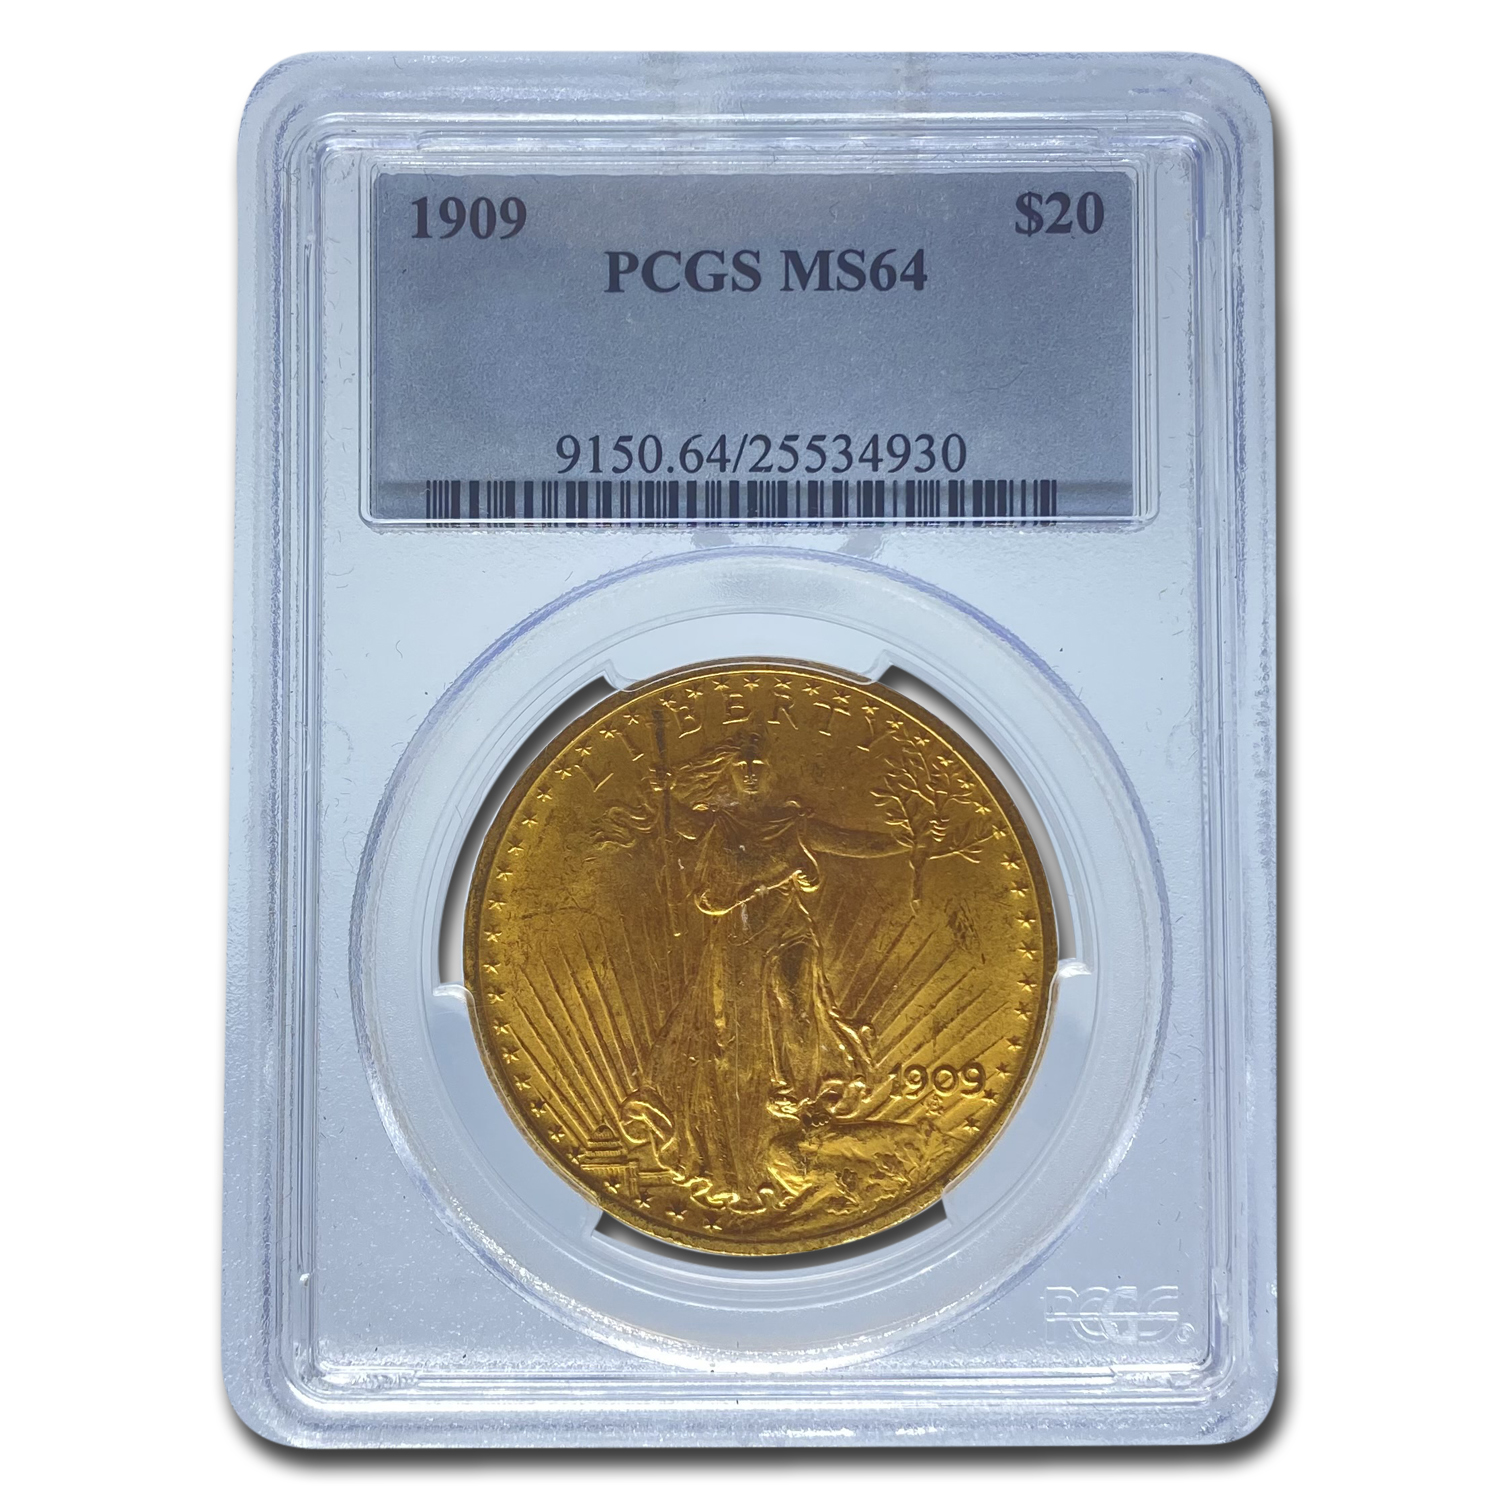 1909 $20 St. Gaudens Gold Double Eagle - MS-64 PCGS